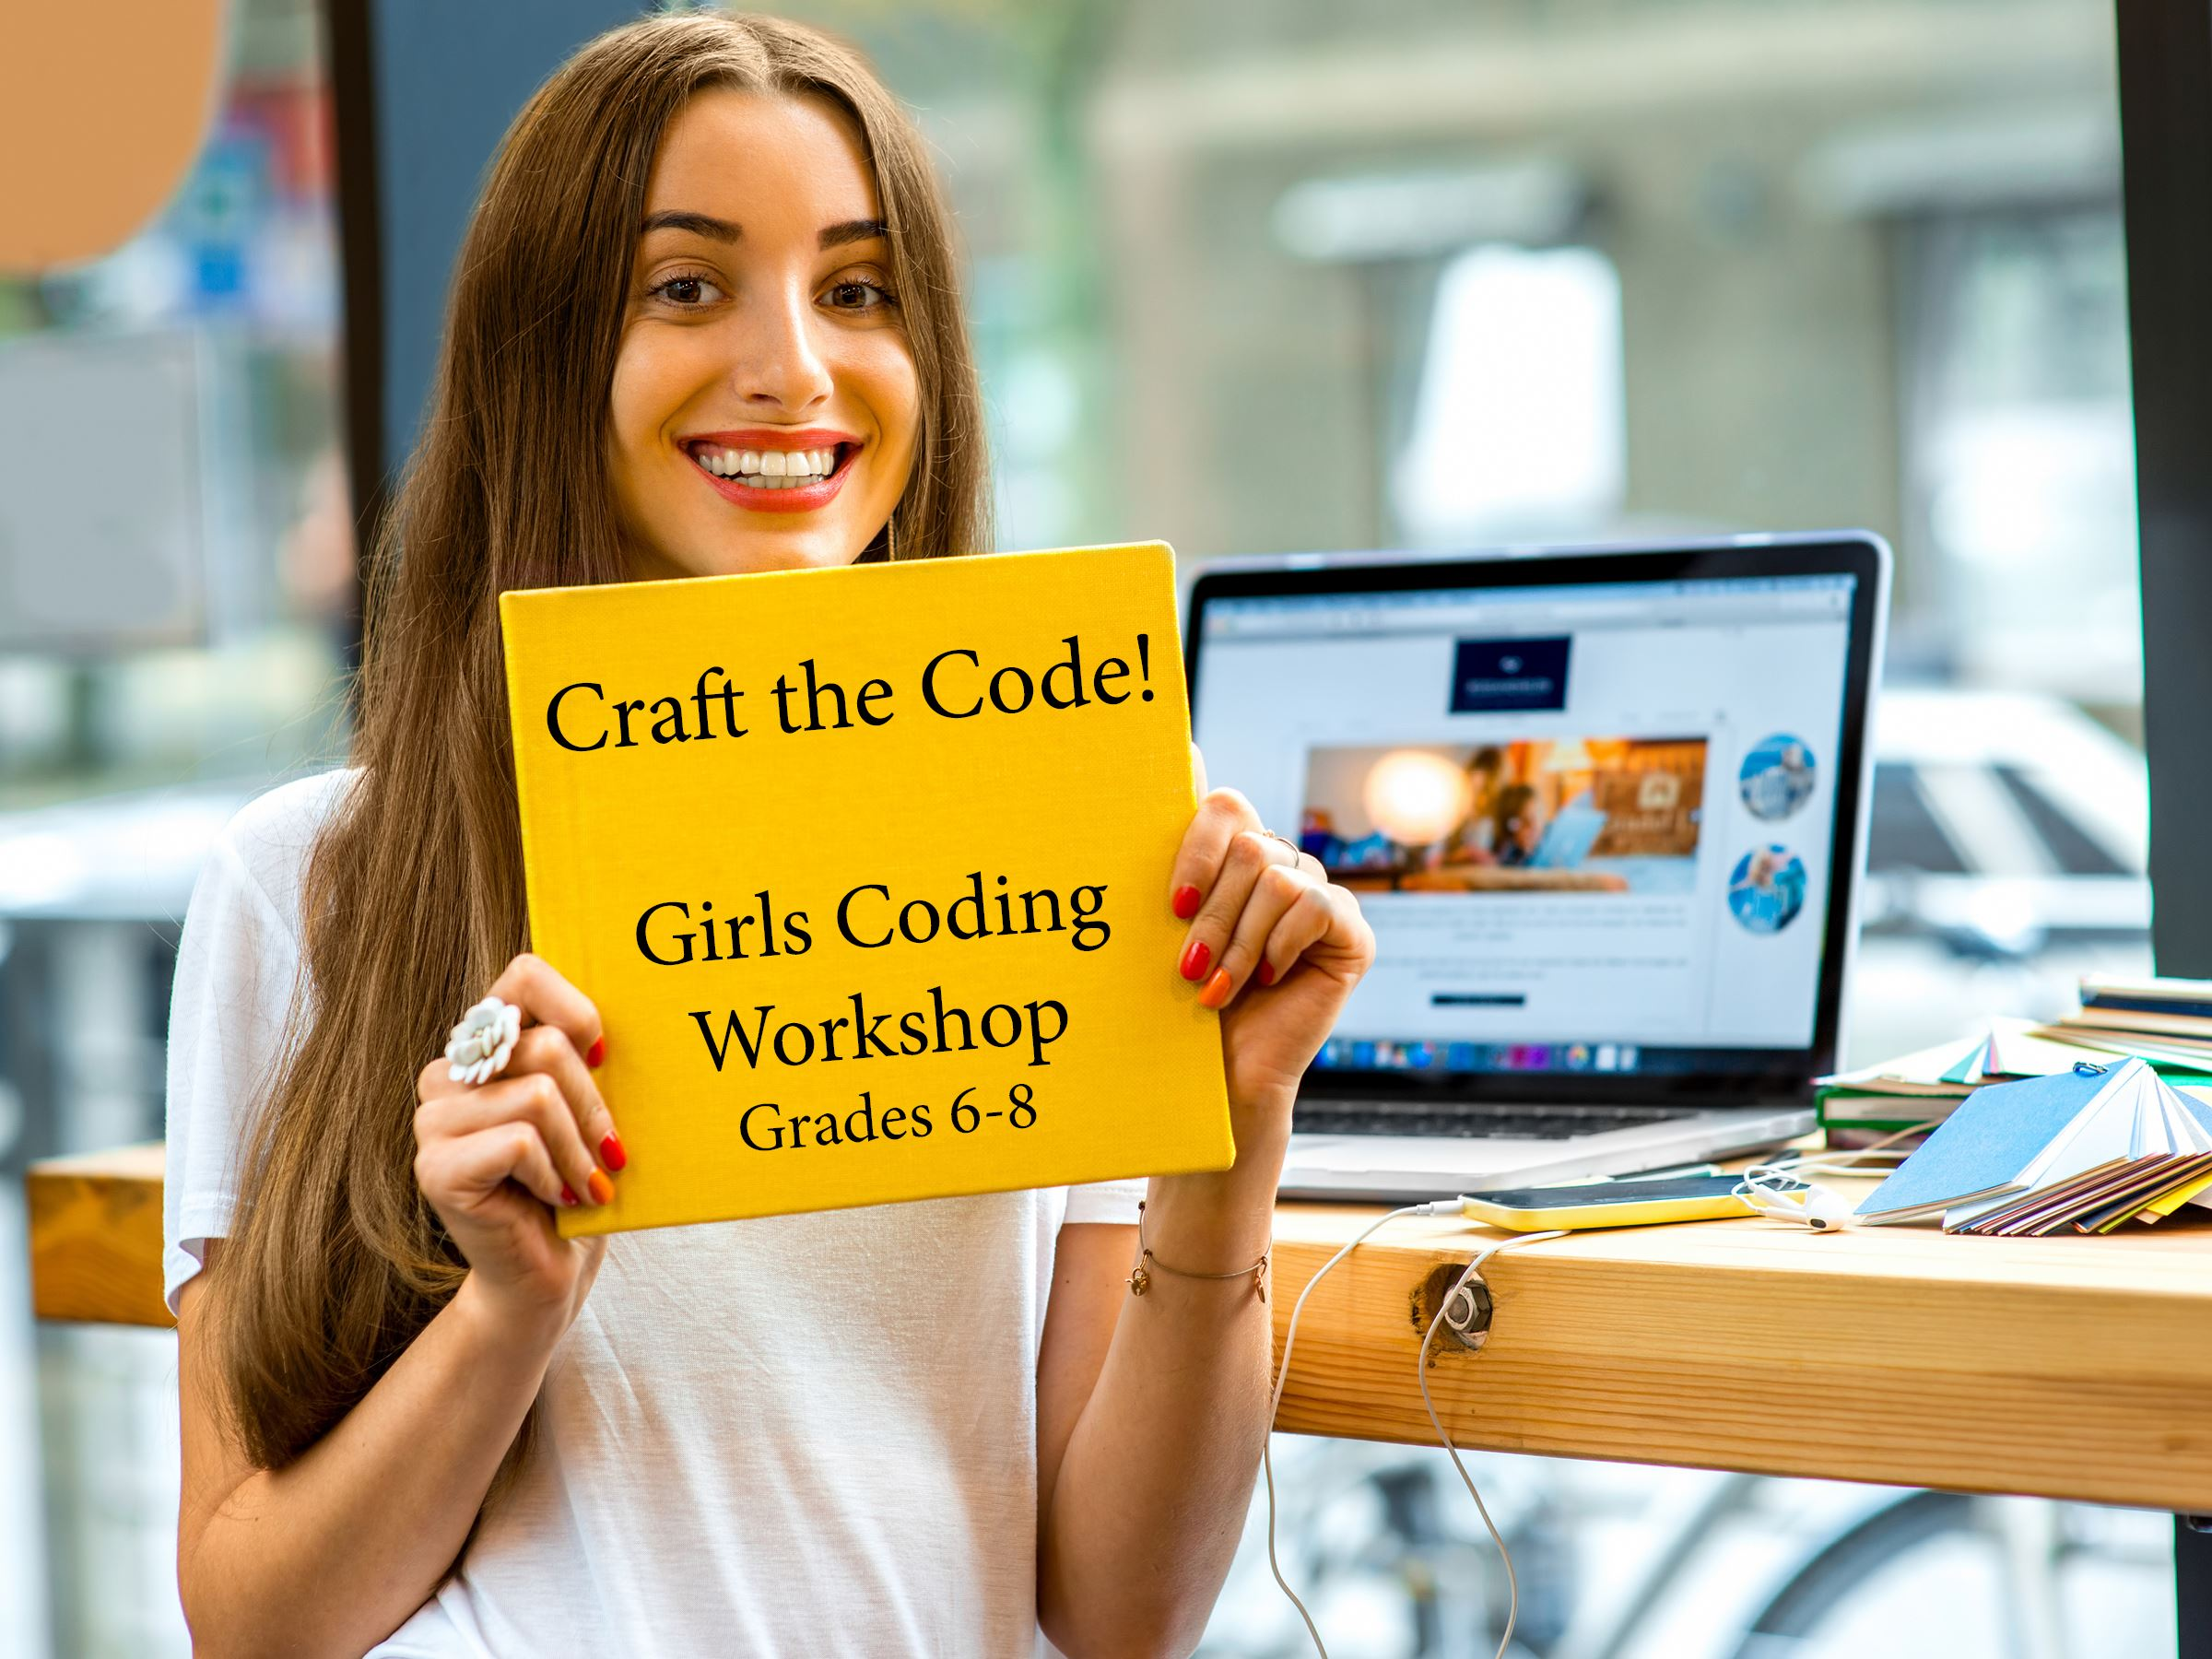 Craft the Code